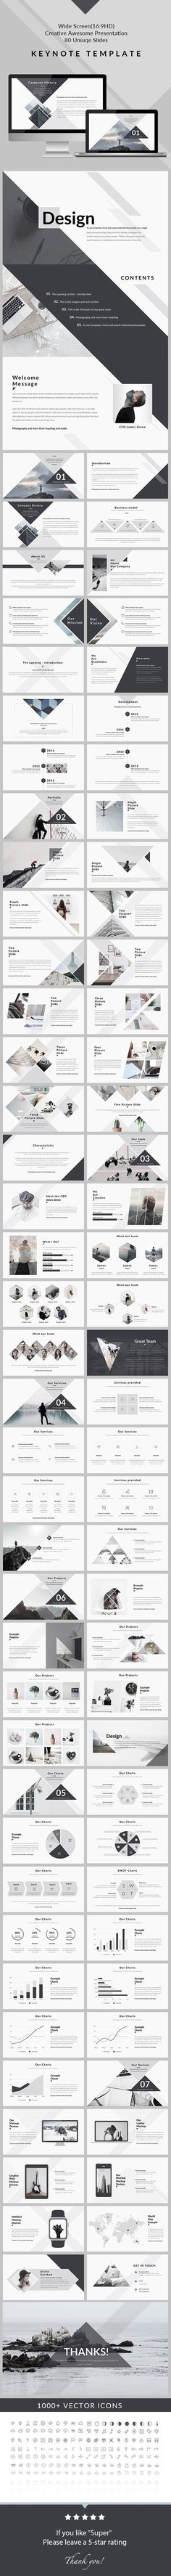 Business infographic : Design Clean & Creative Keynote Template Creative Keynote Templates